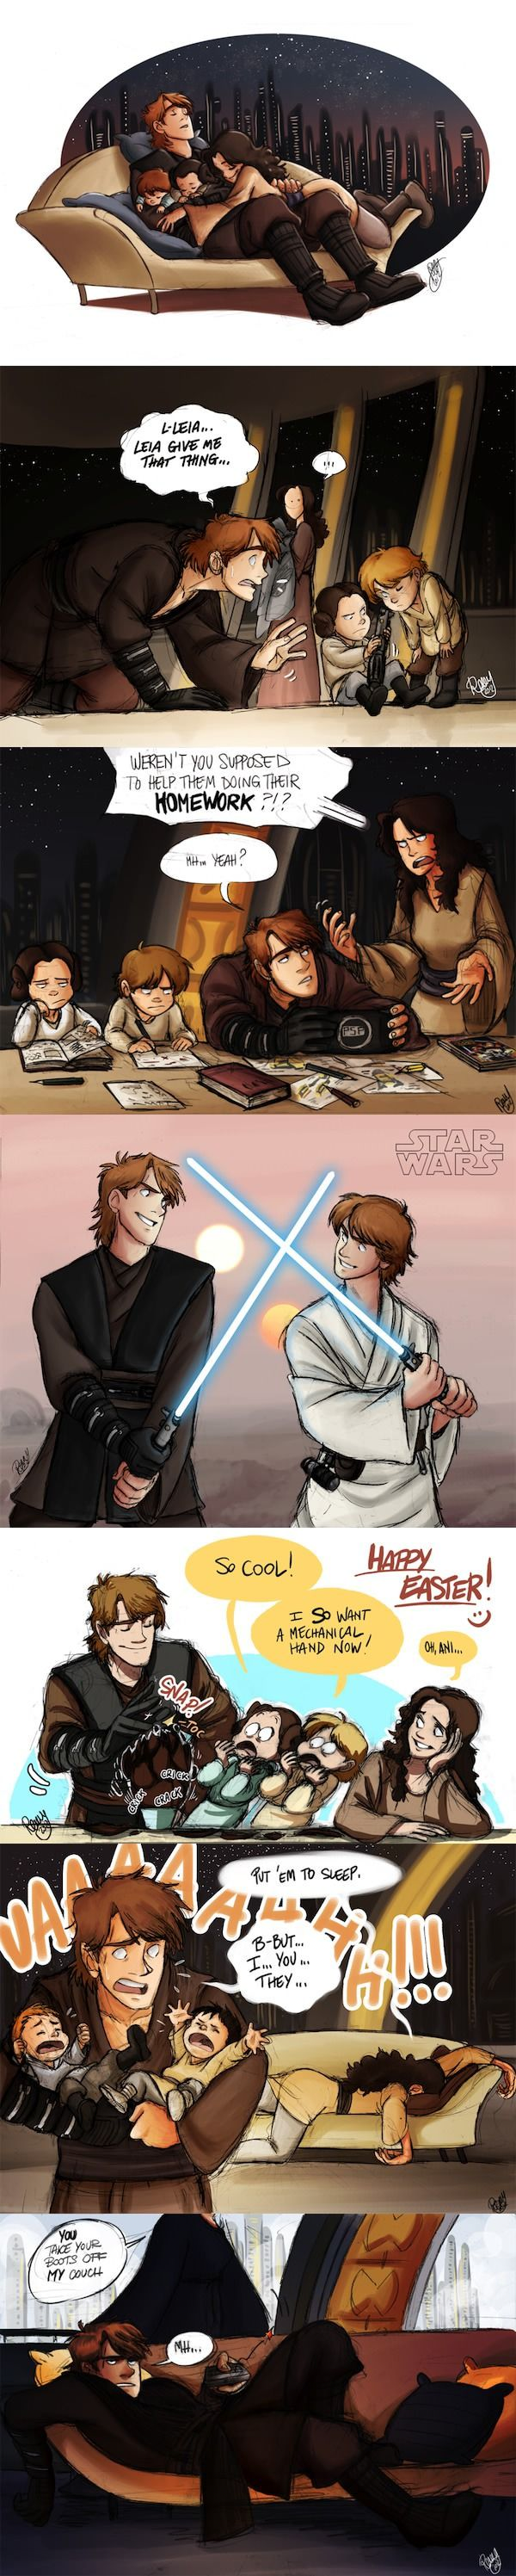 If Anakin Skywalker had never become evil...